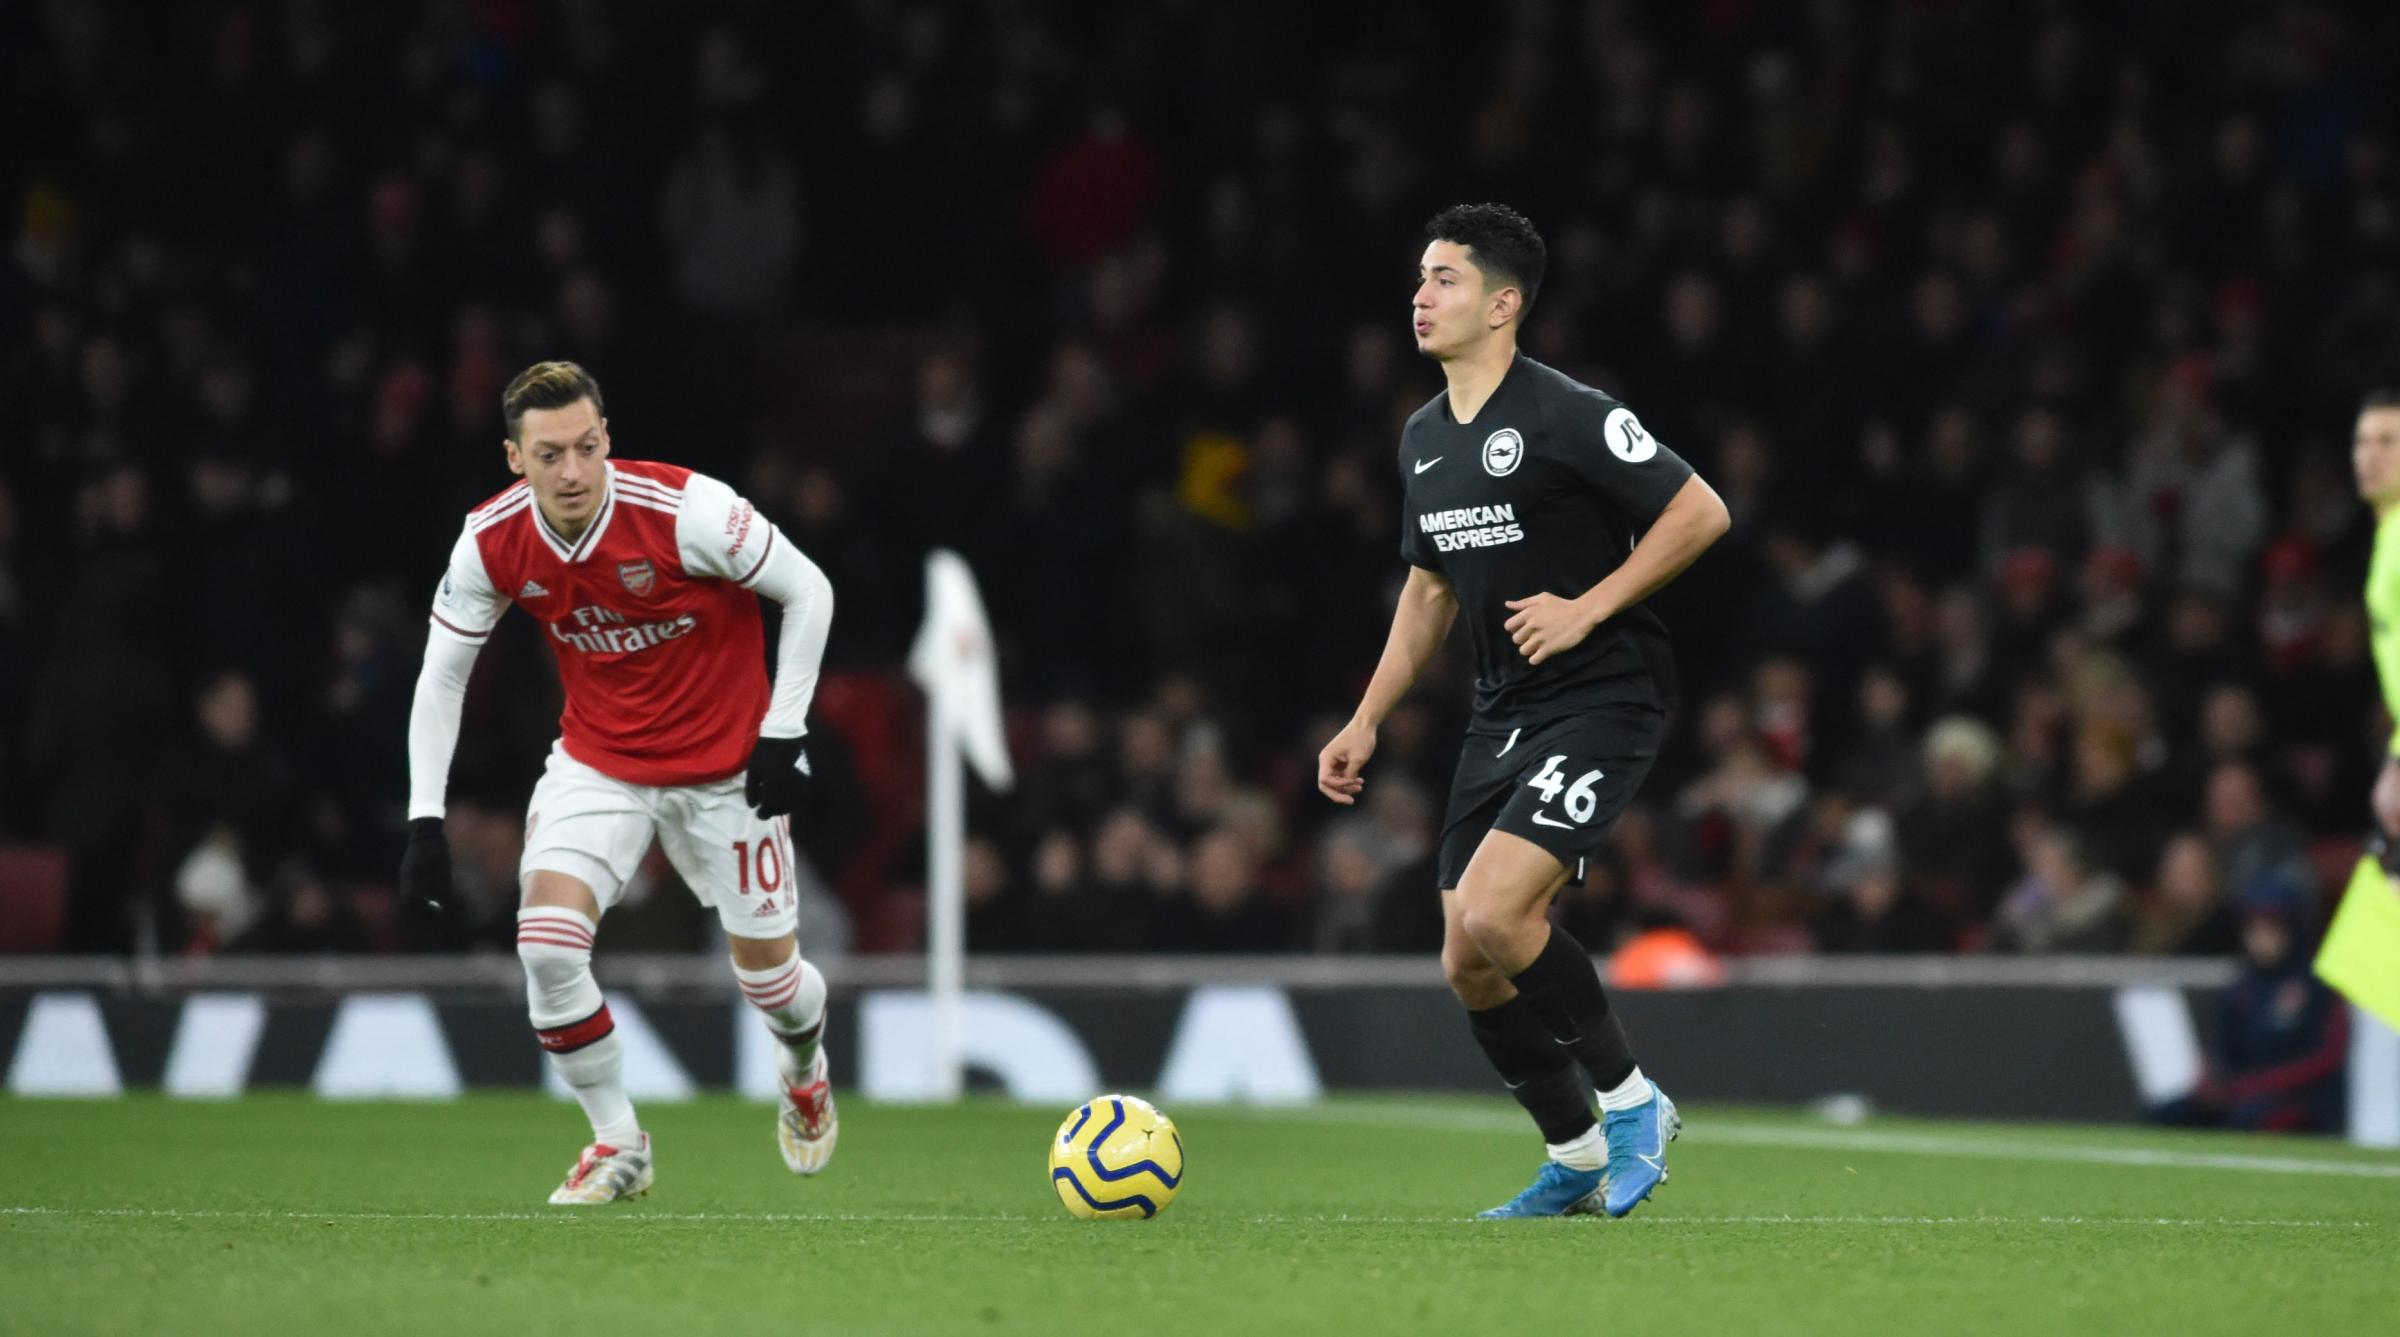 Steven Alzate was asked to attack behind Mesut Ozil at Arsenal